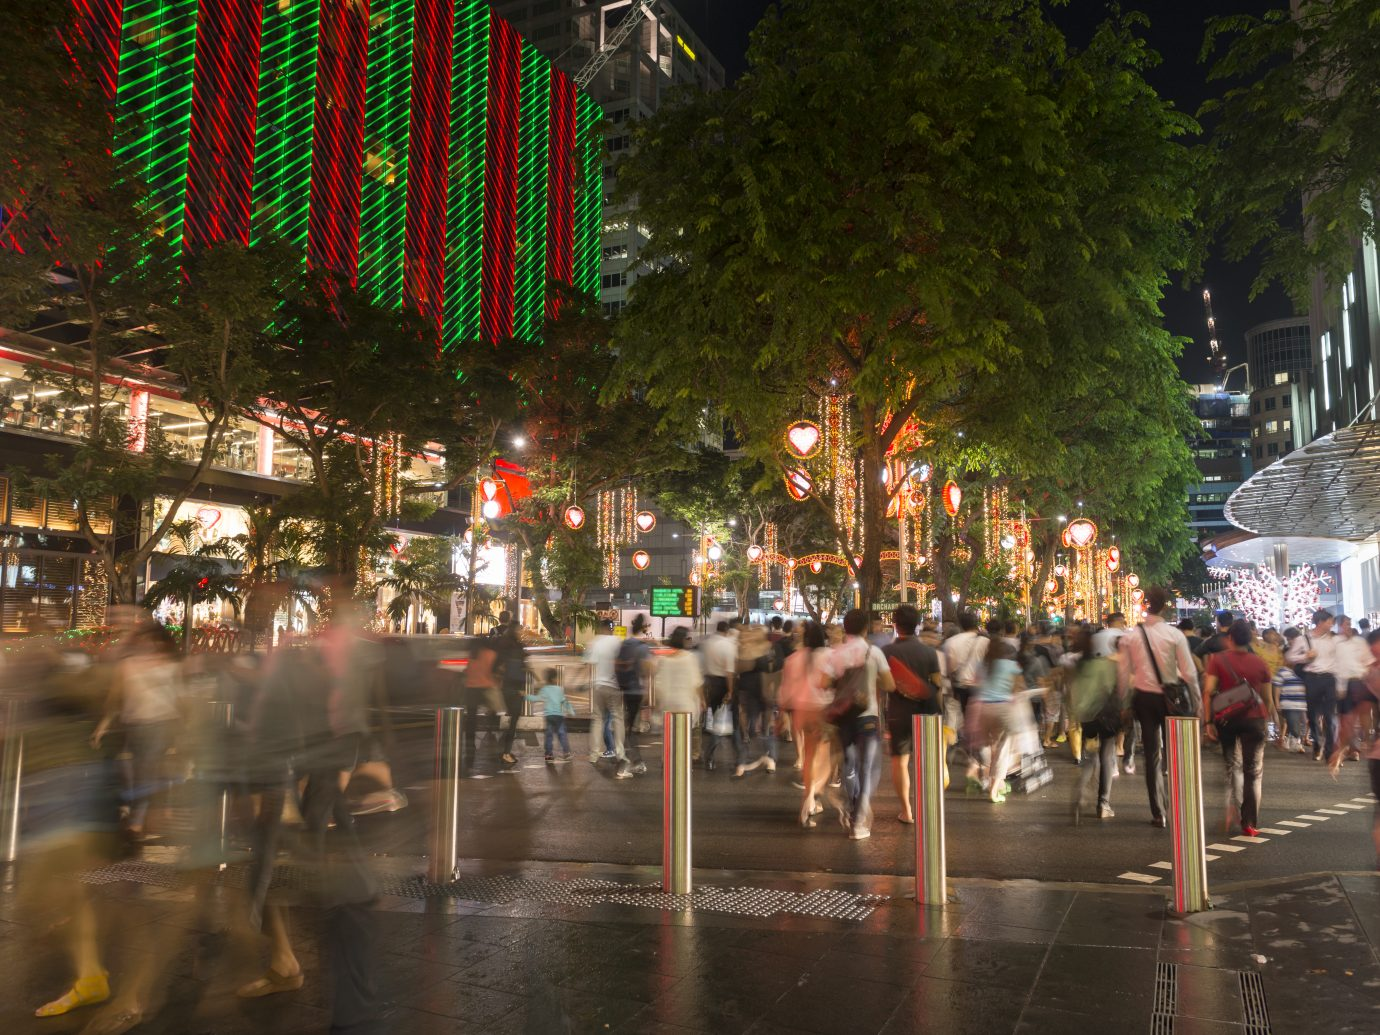 """Shoppers, tourists, walking on the pedestrian crossing in the night after a rain, enjoying the view of Christmas light up along Orchard Road. Singapore Shopping Centres, hotels and the street are light up for Christmas during this festive season."""